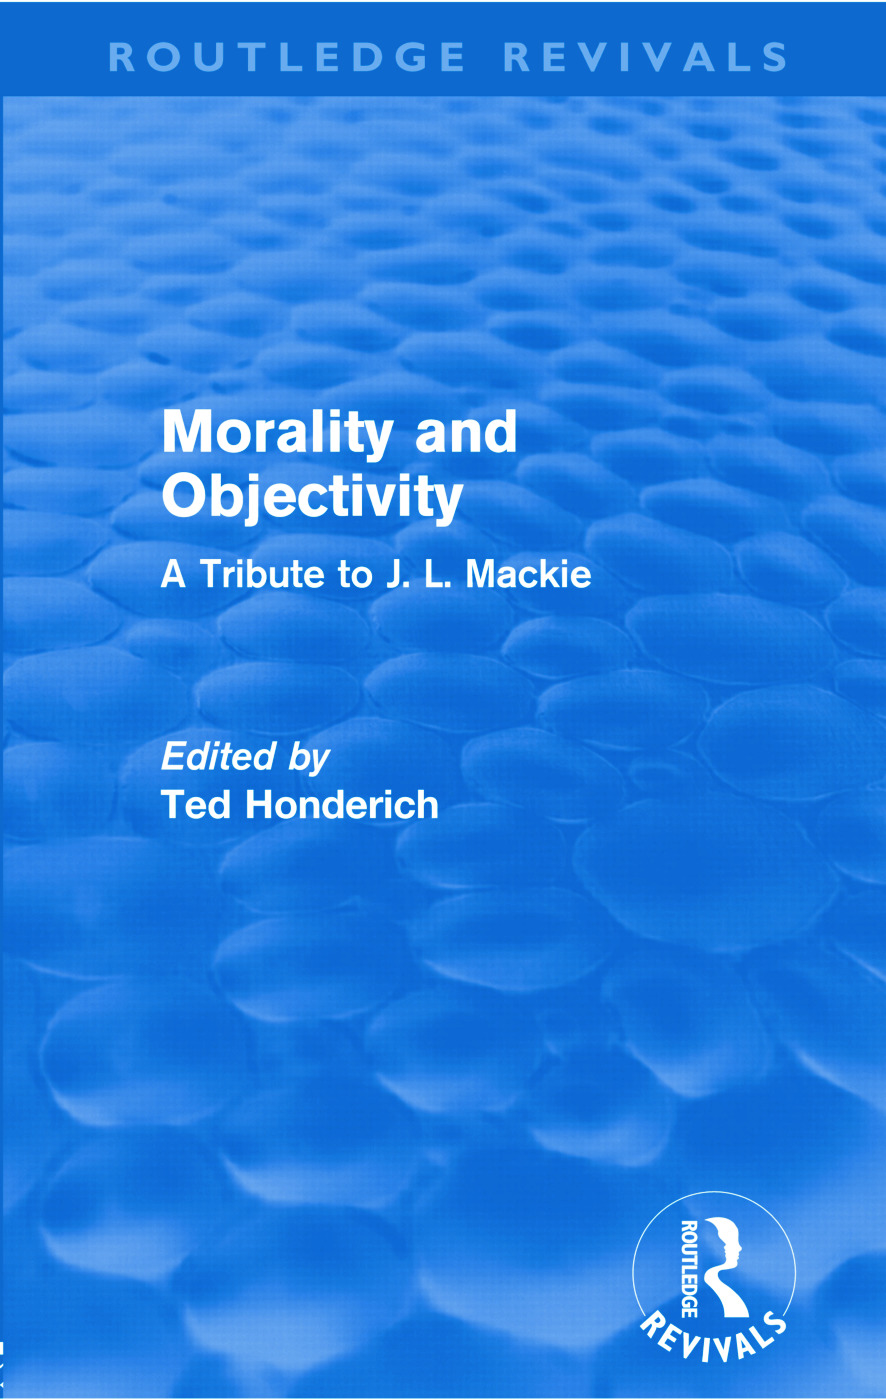 Morality and Objectivity (Routledge Revivals): A Tribute to J. L. Mackie (Paperback) book cover